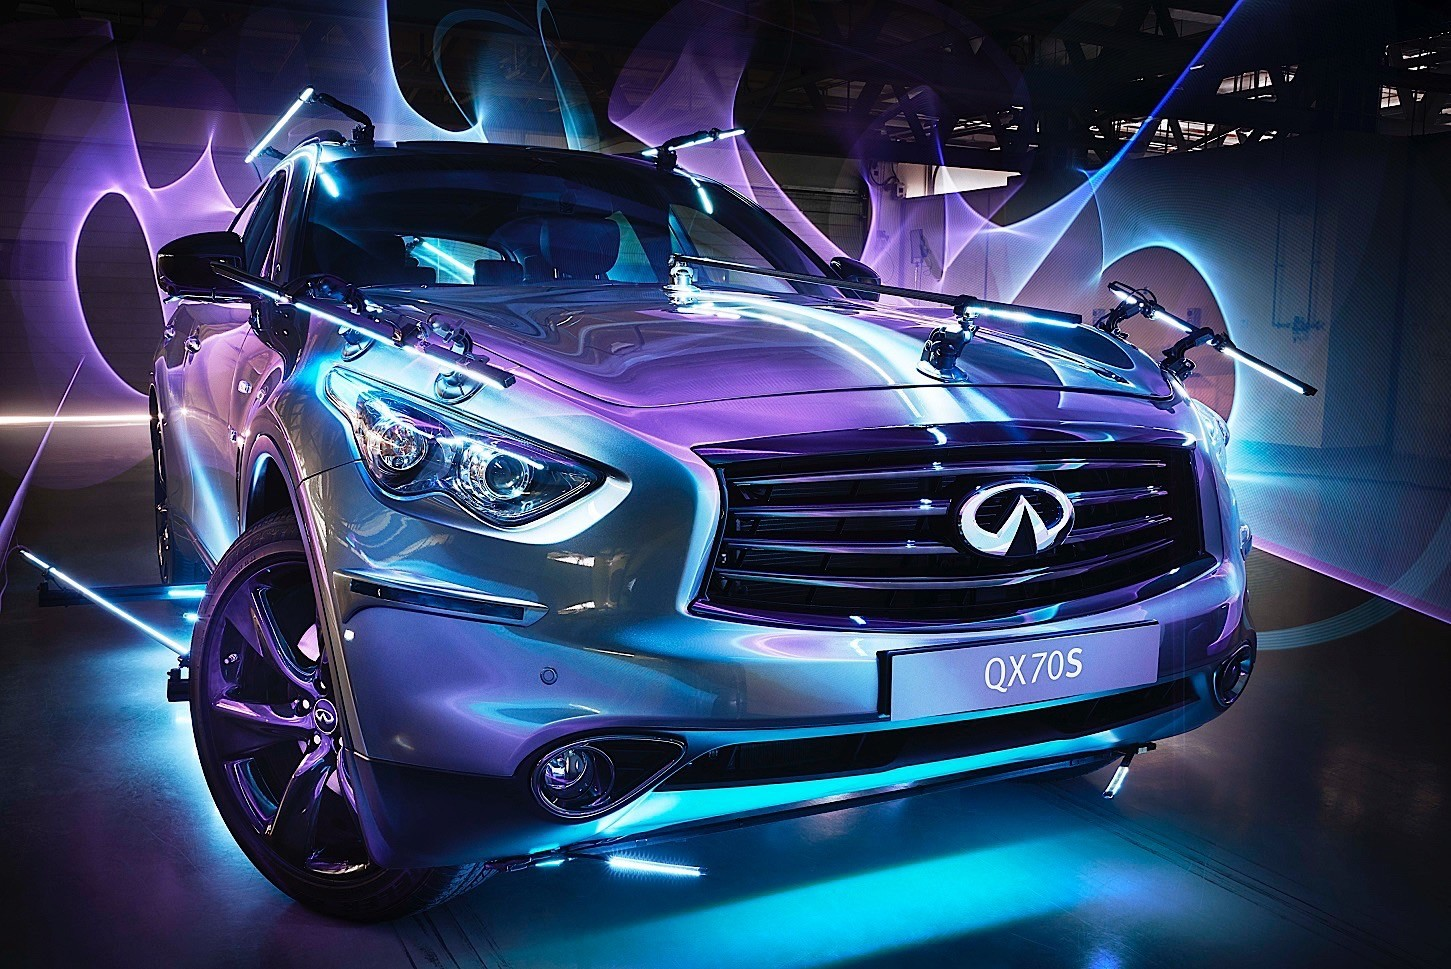 Light Painting With Three Infiniti Qx70s Is A Must Watch